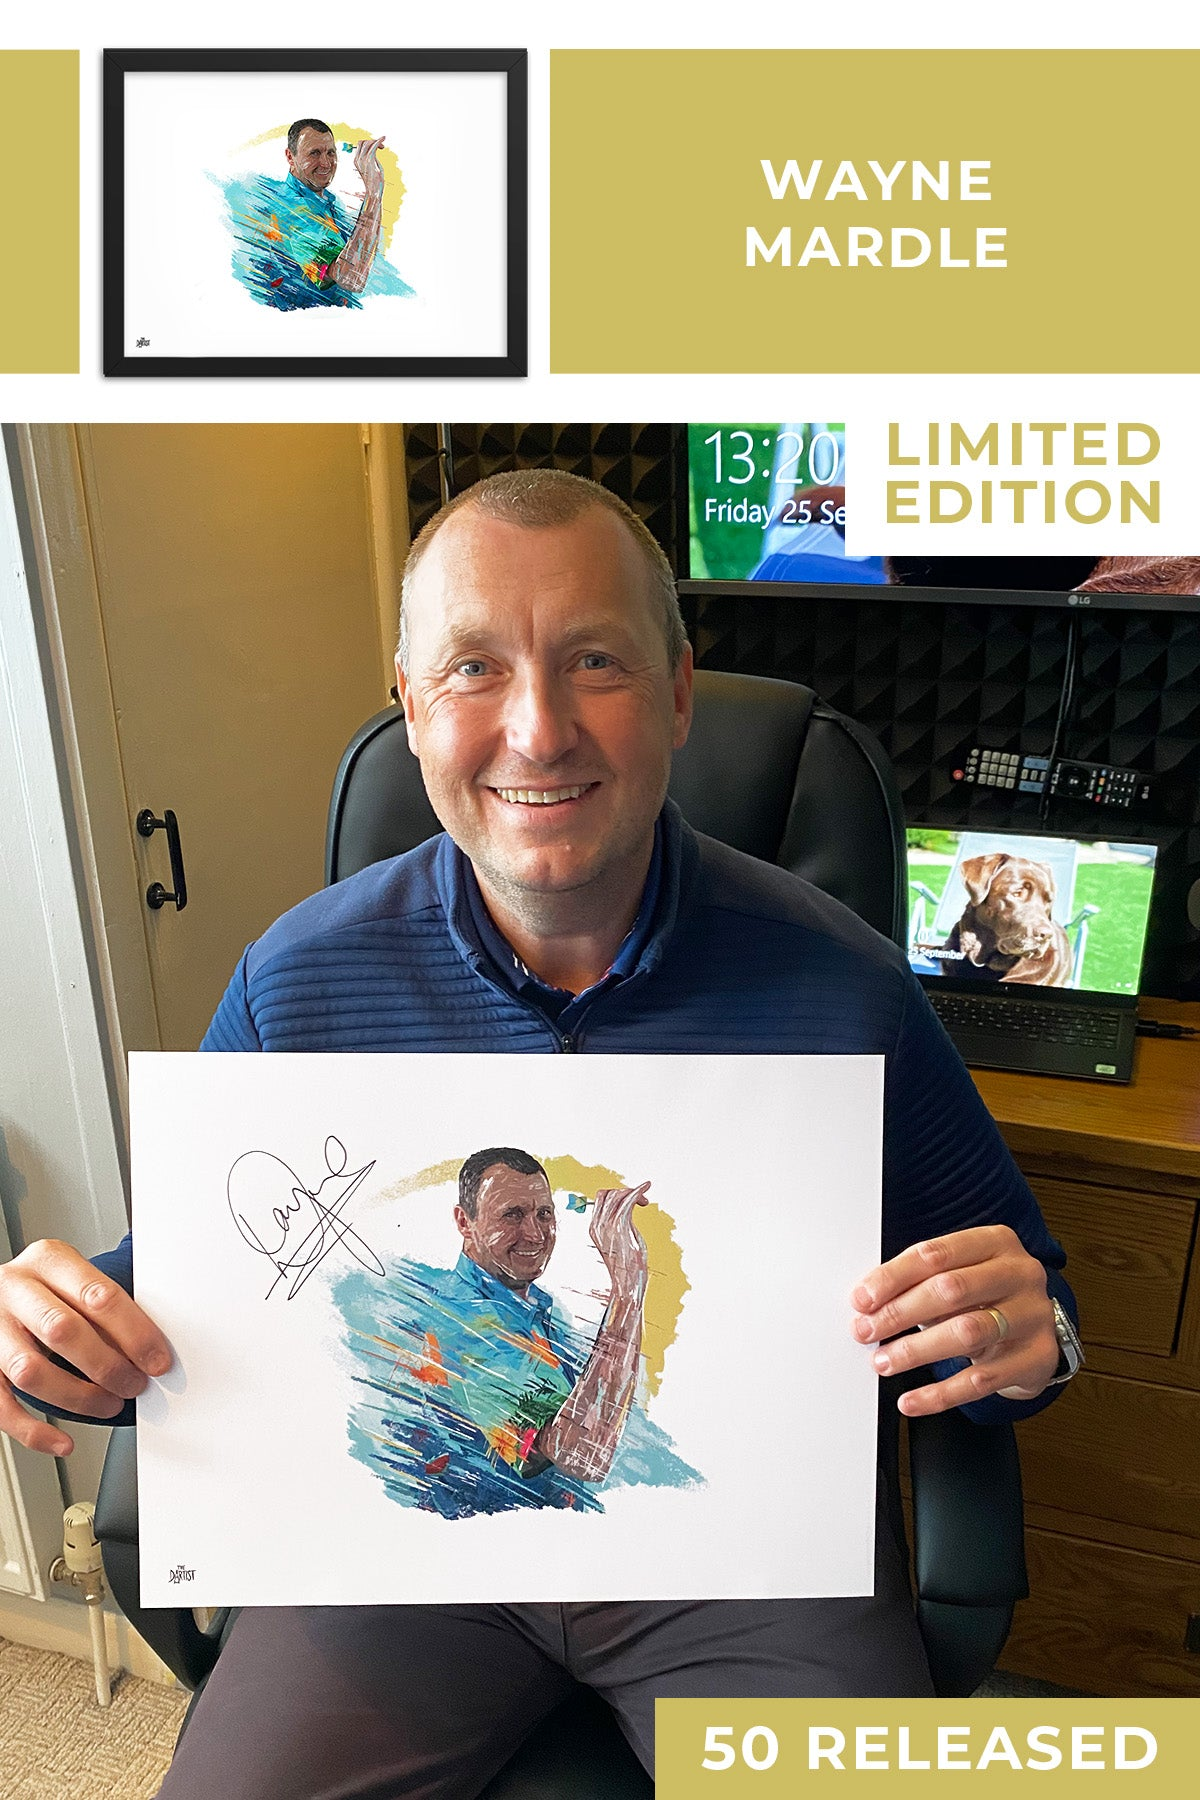 Wayne Mardle Limited Edition Signed Art Print - The Dartist